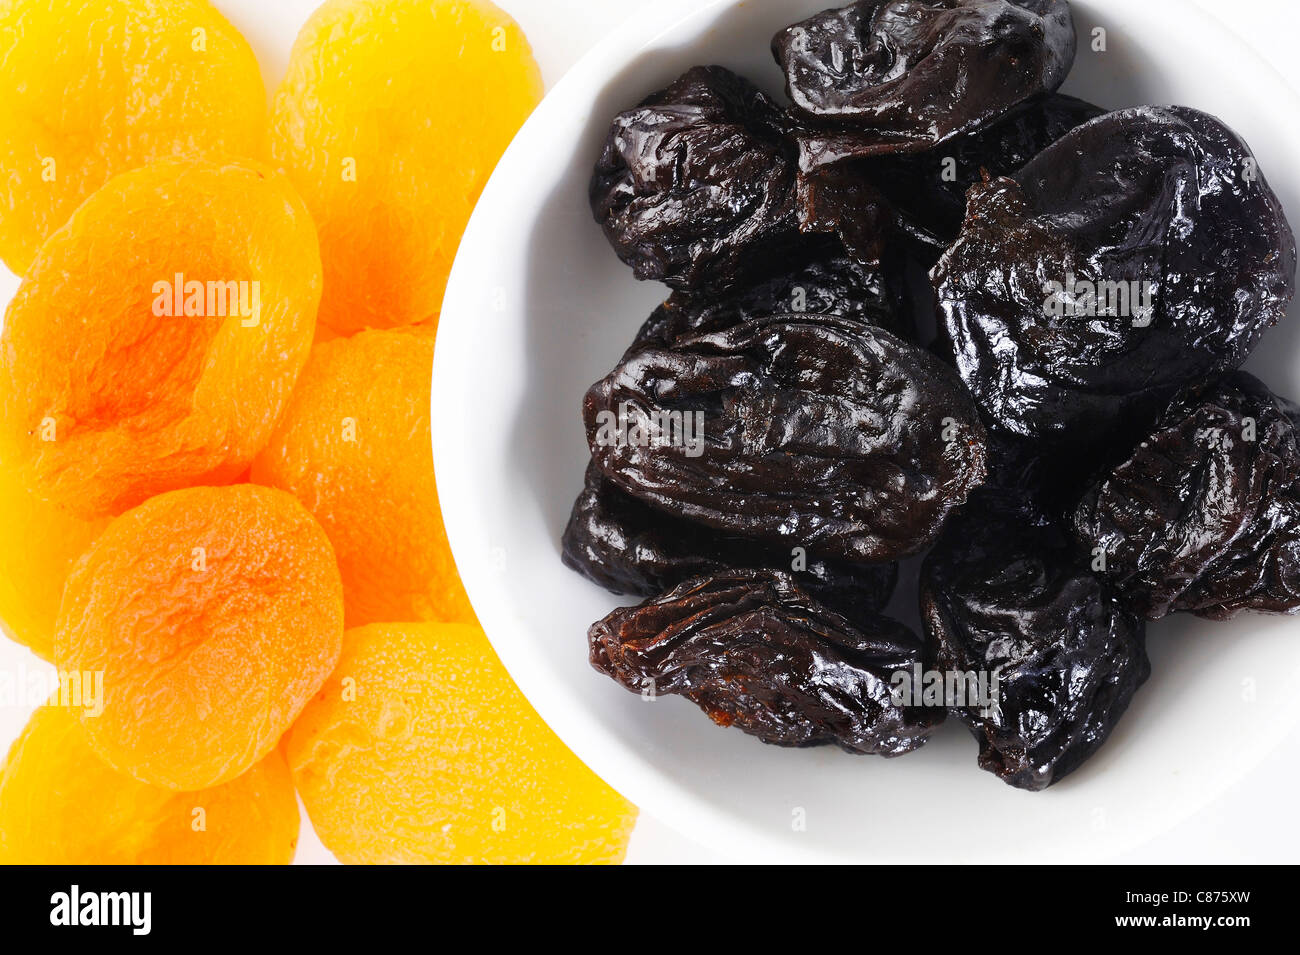 Dried plums and apricots - Stock Image